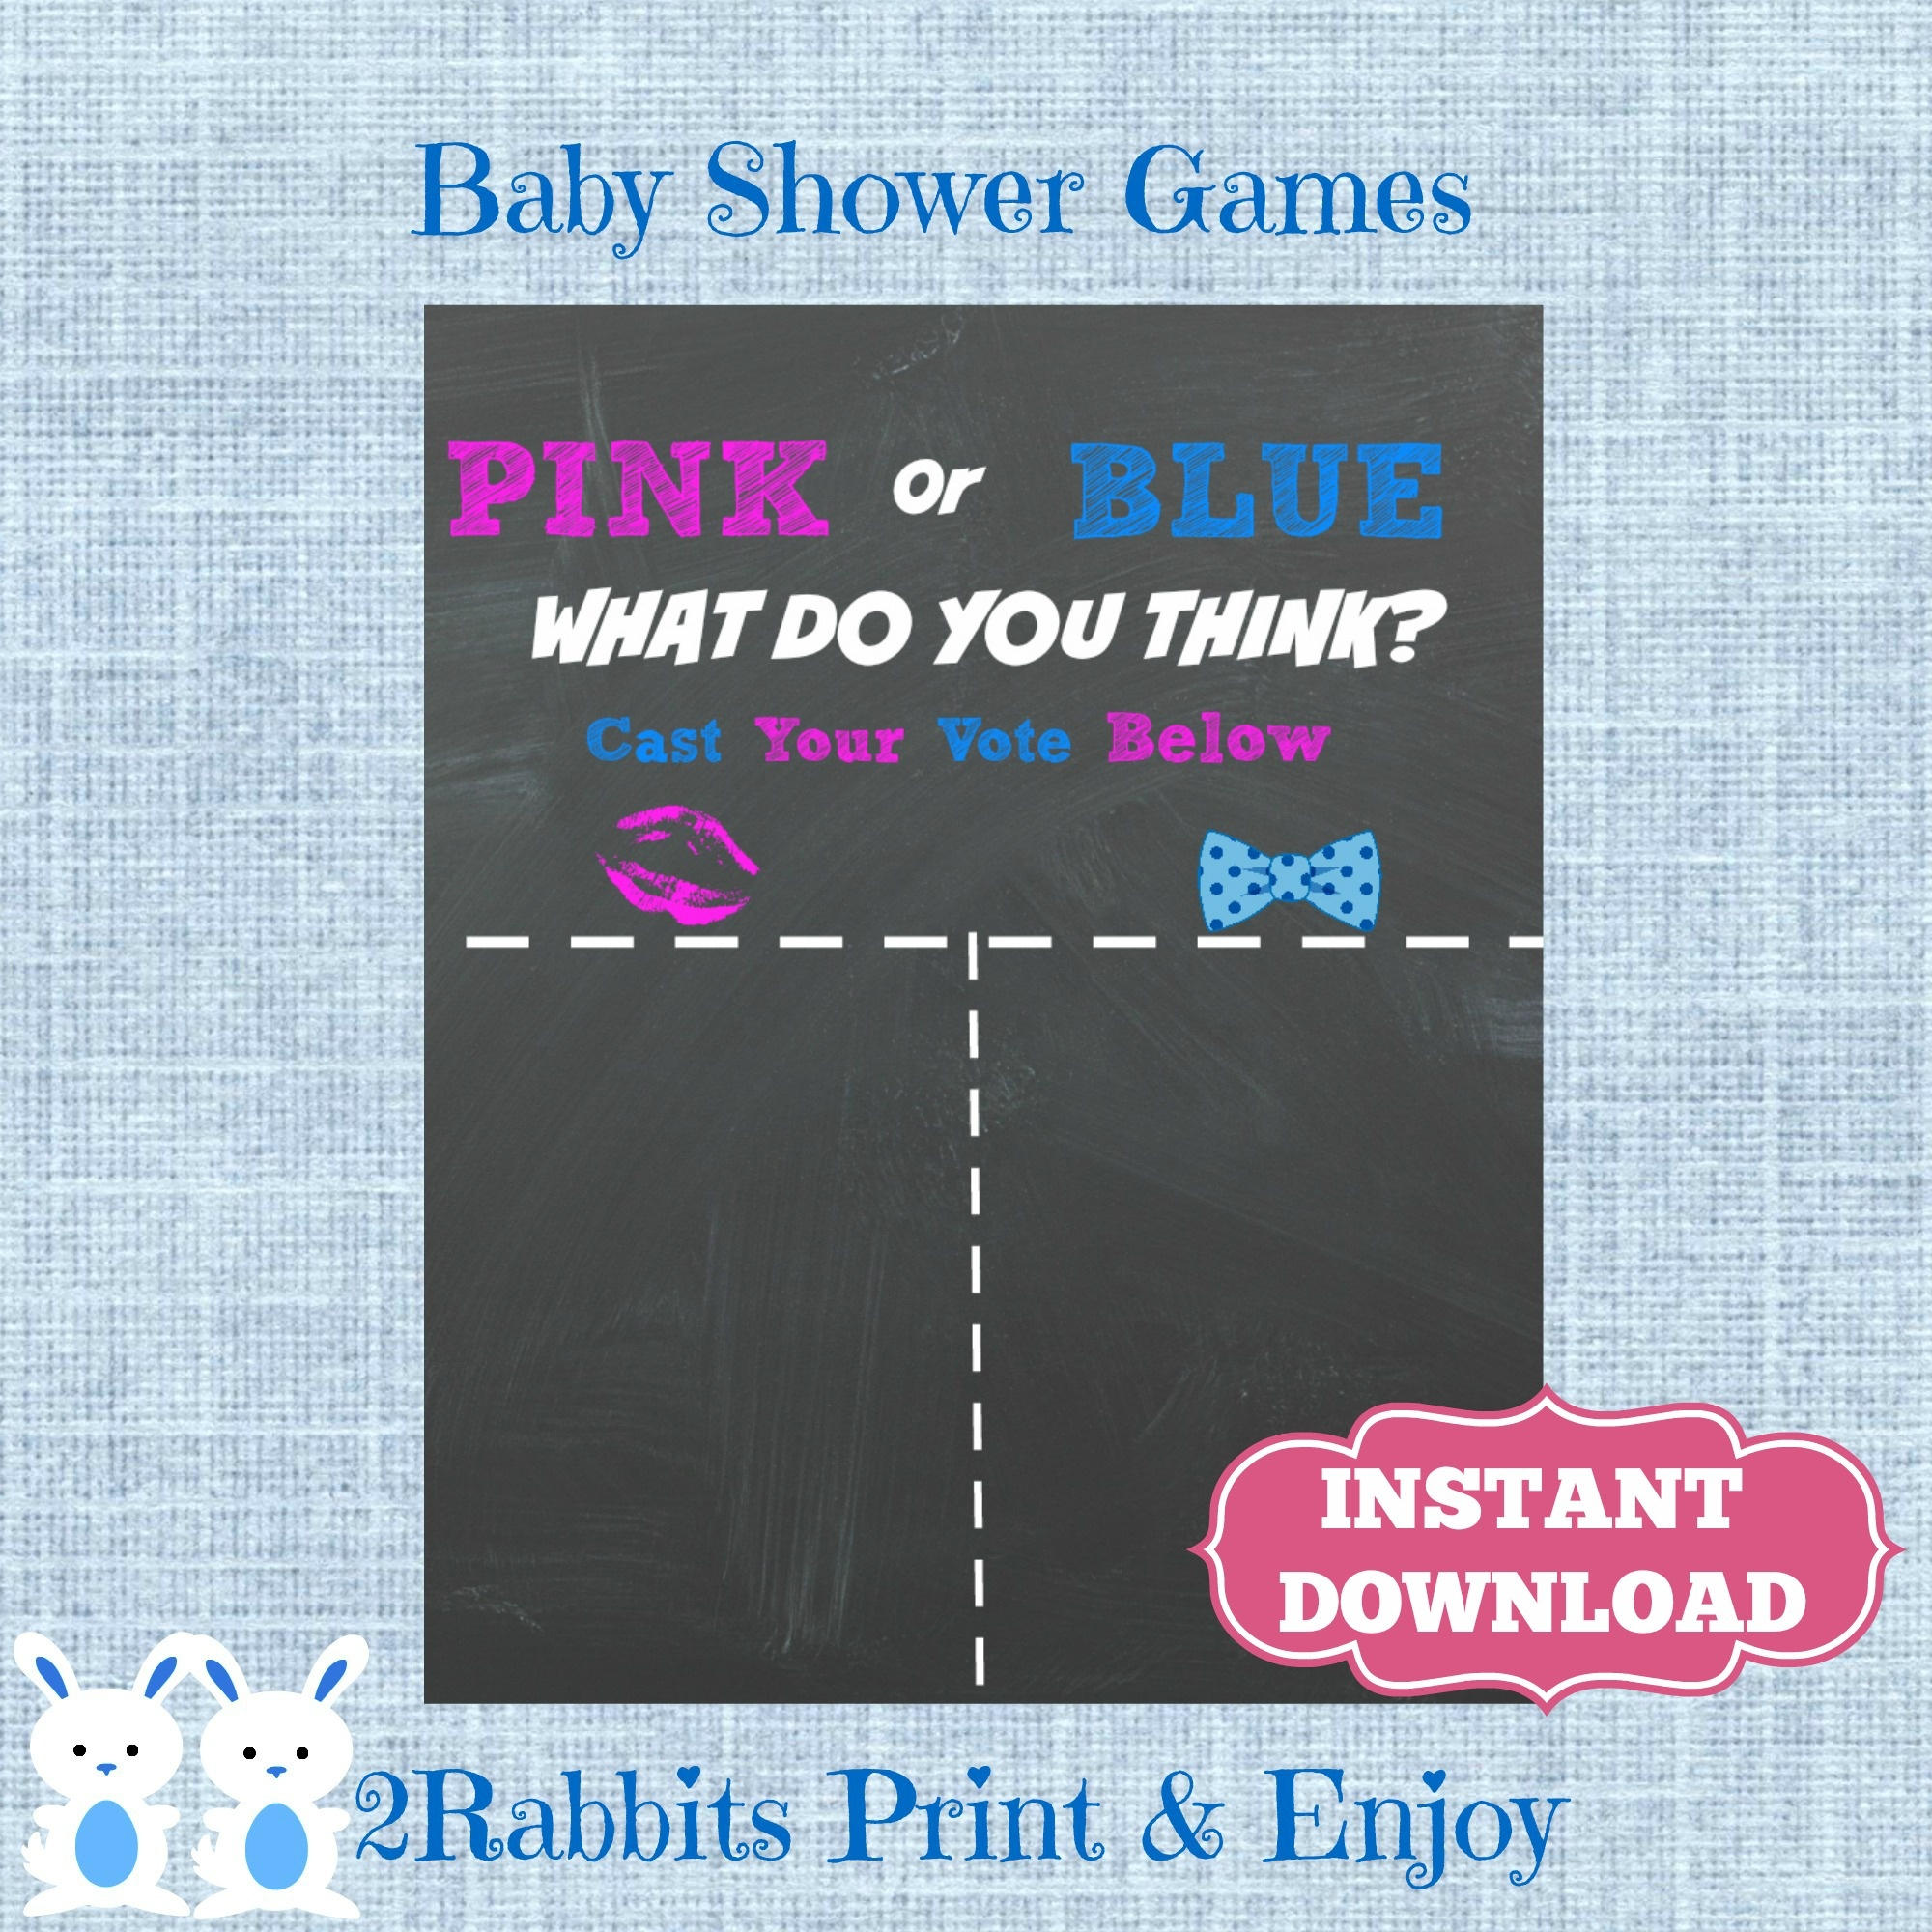 Gender Reveal Baby Shower Ideas - My Practical Baby Shower Guide - Free Printable Gender Reveal Templates